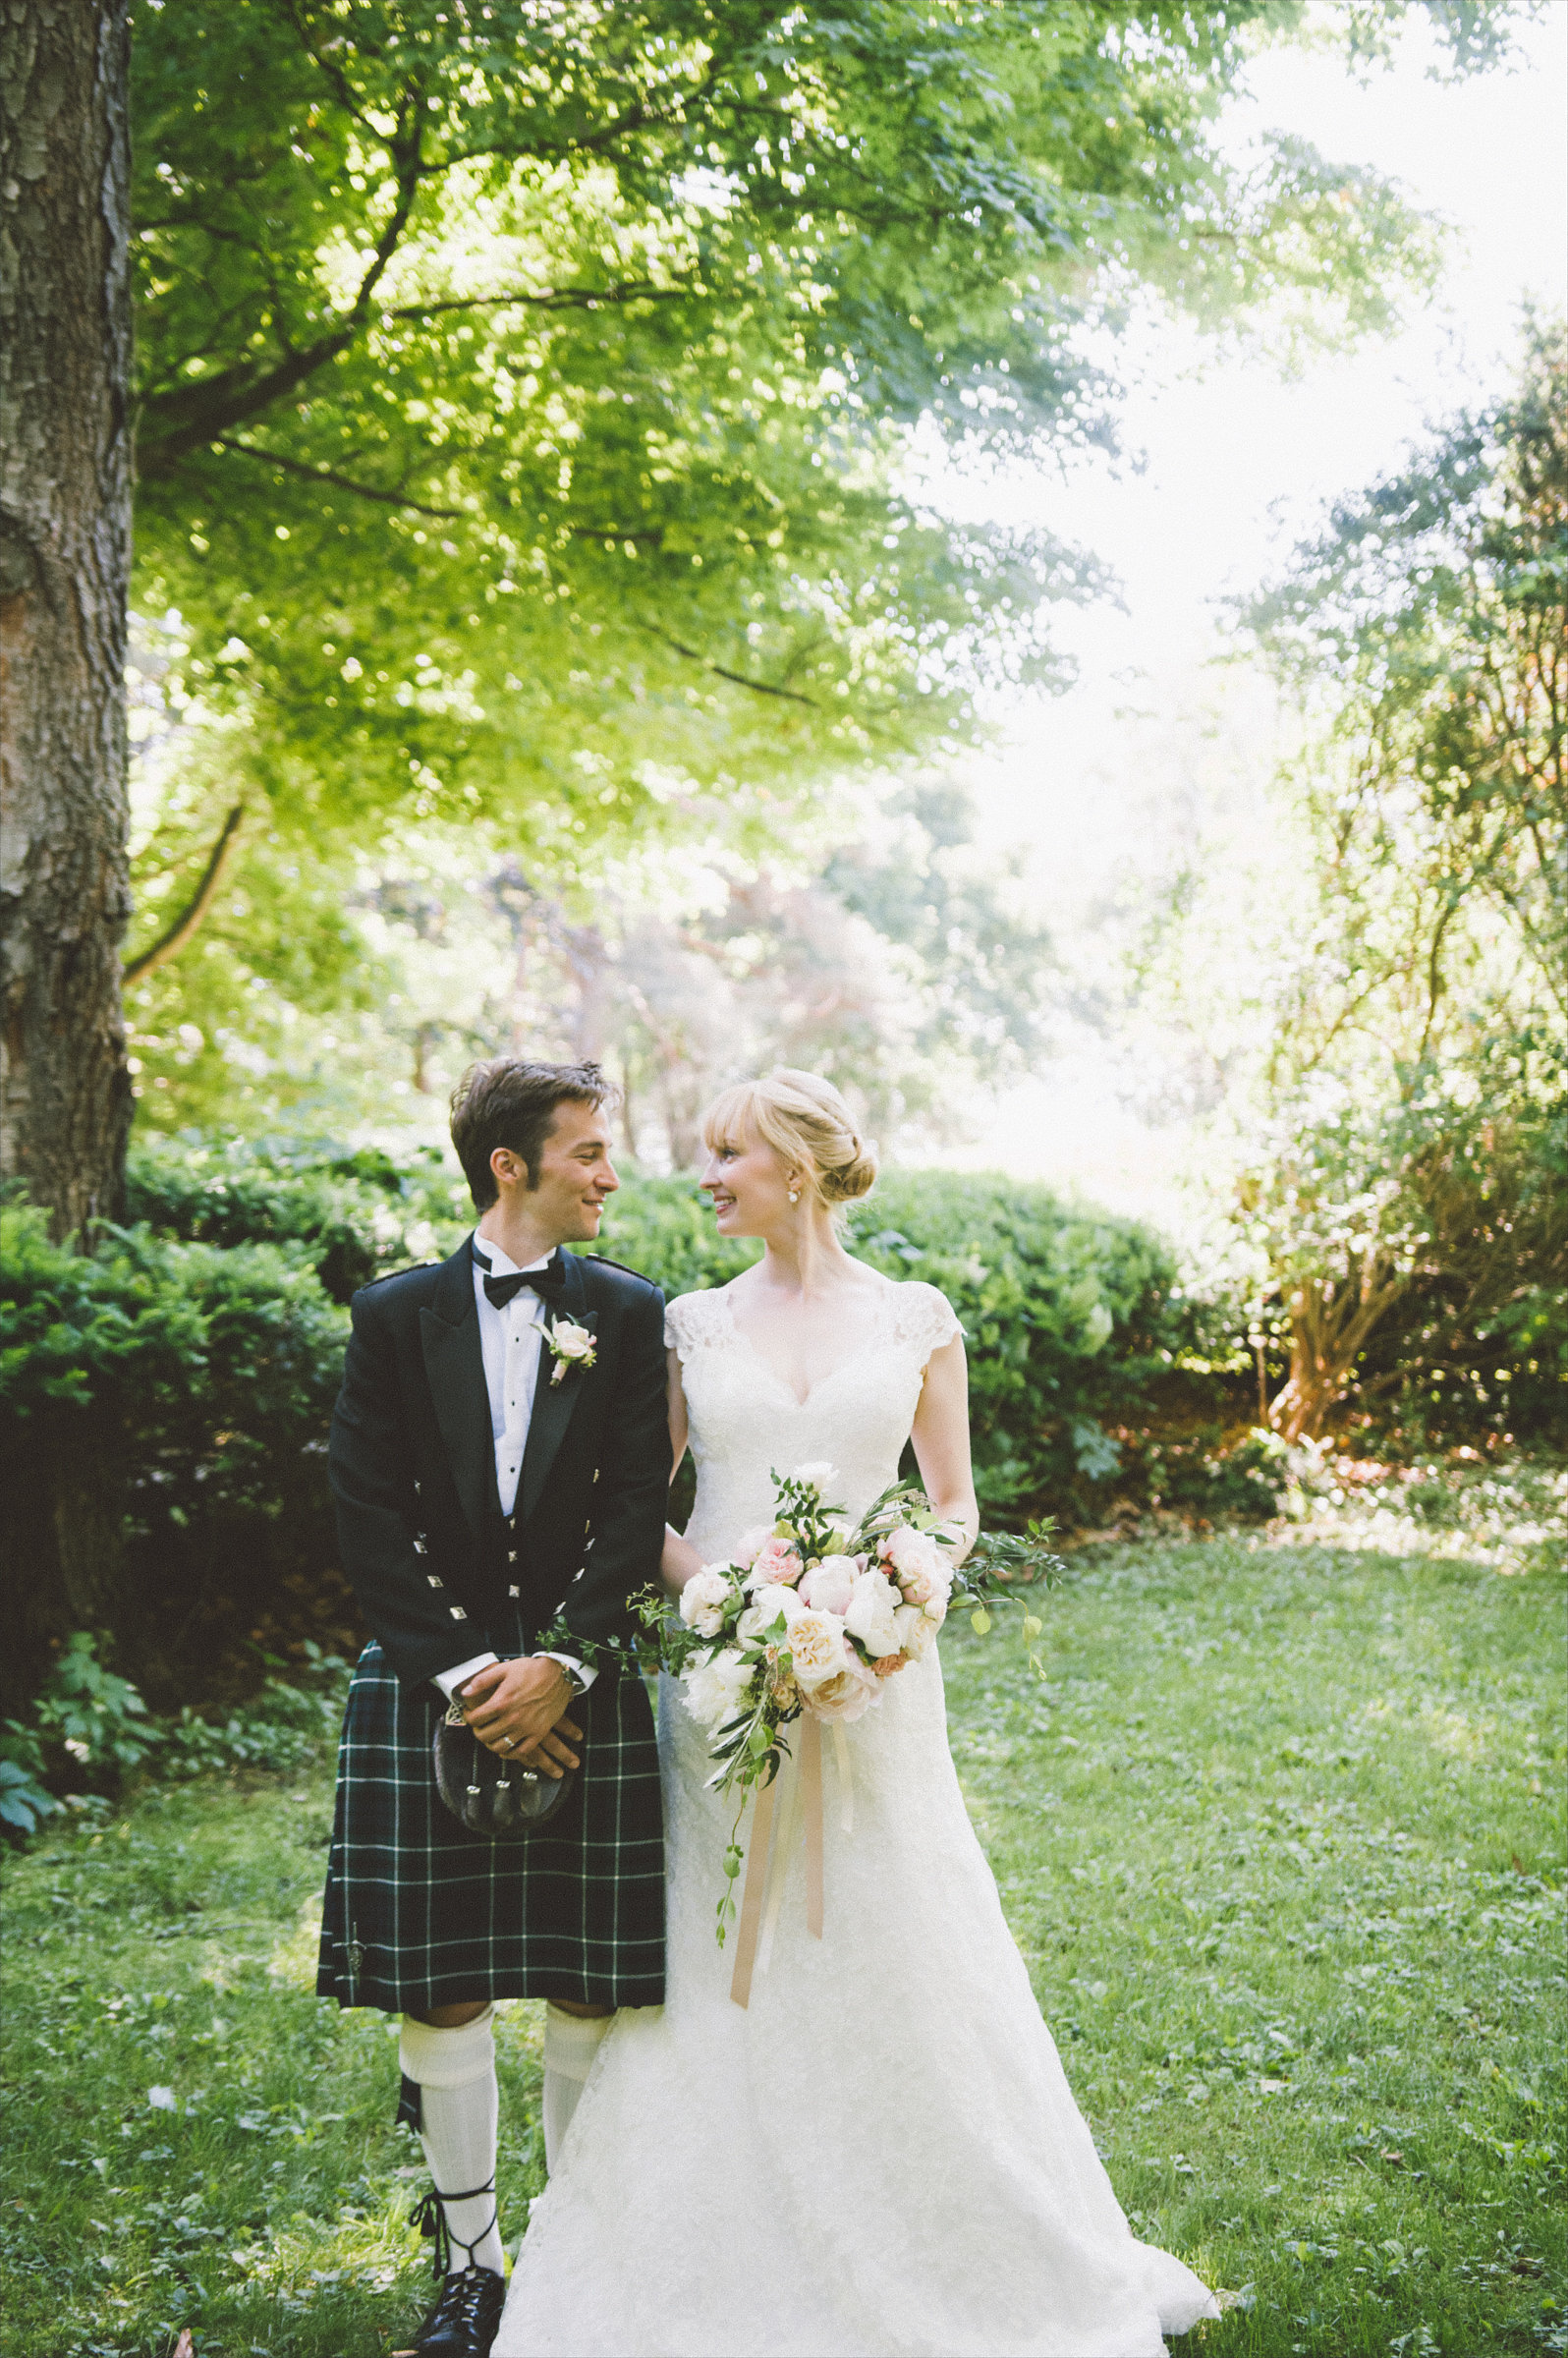 amanda cowley events niagara wedding planner kurtz orchard bride and groom kilt formal scottish attire